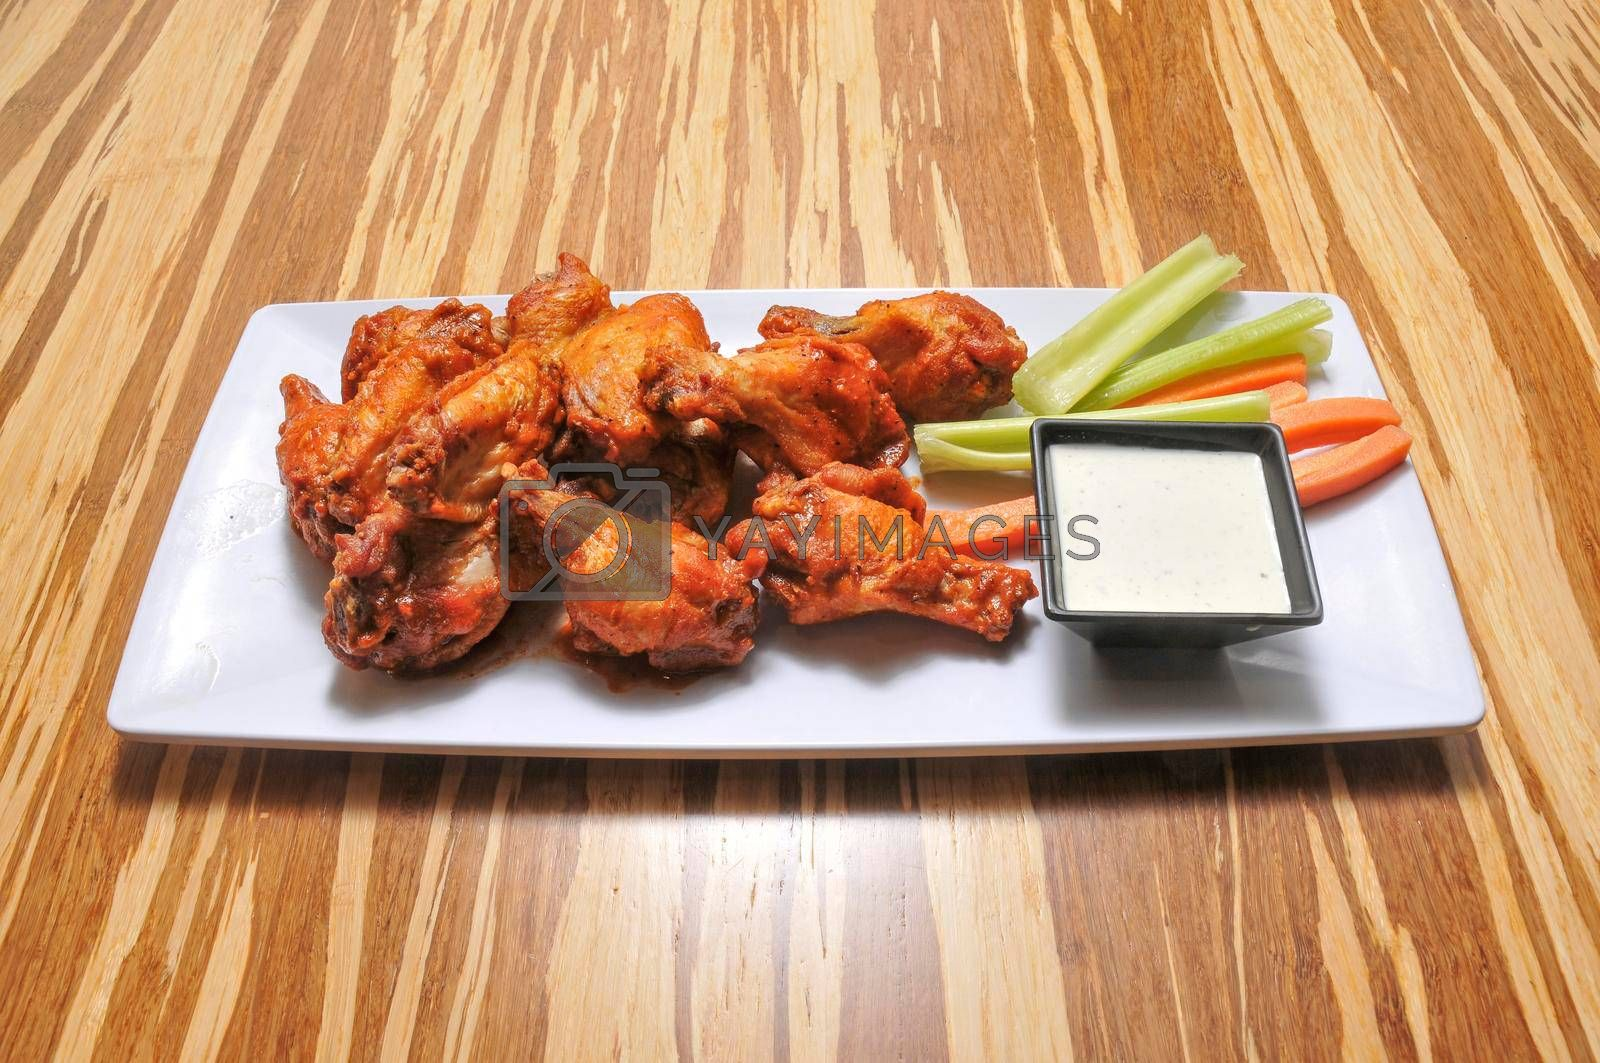 American cuisine dish known as chicken wings